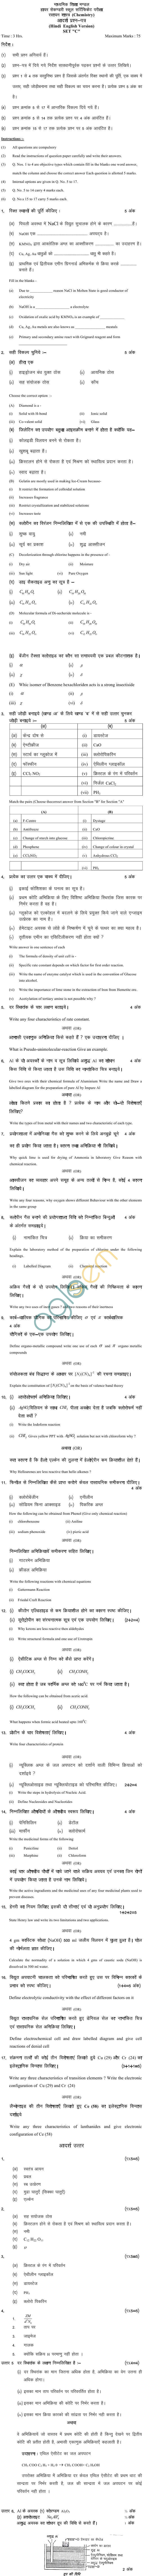 MP Board Class XII Chemistry Model Questions & Answers - Set 3